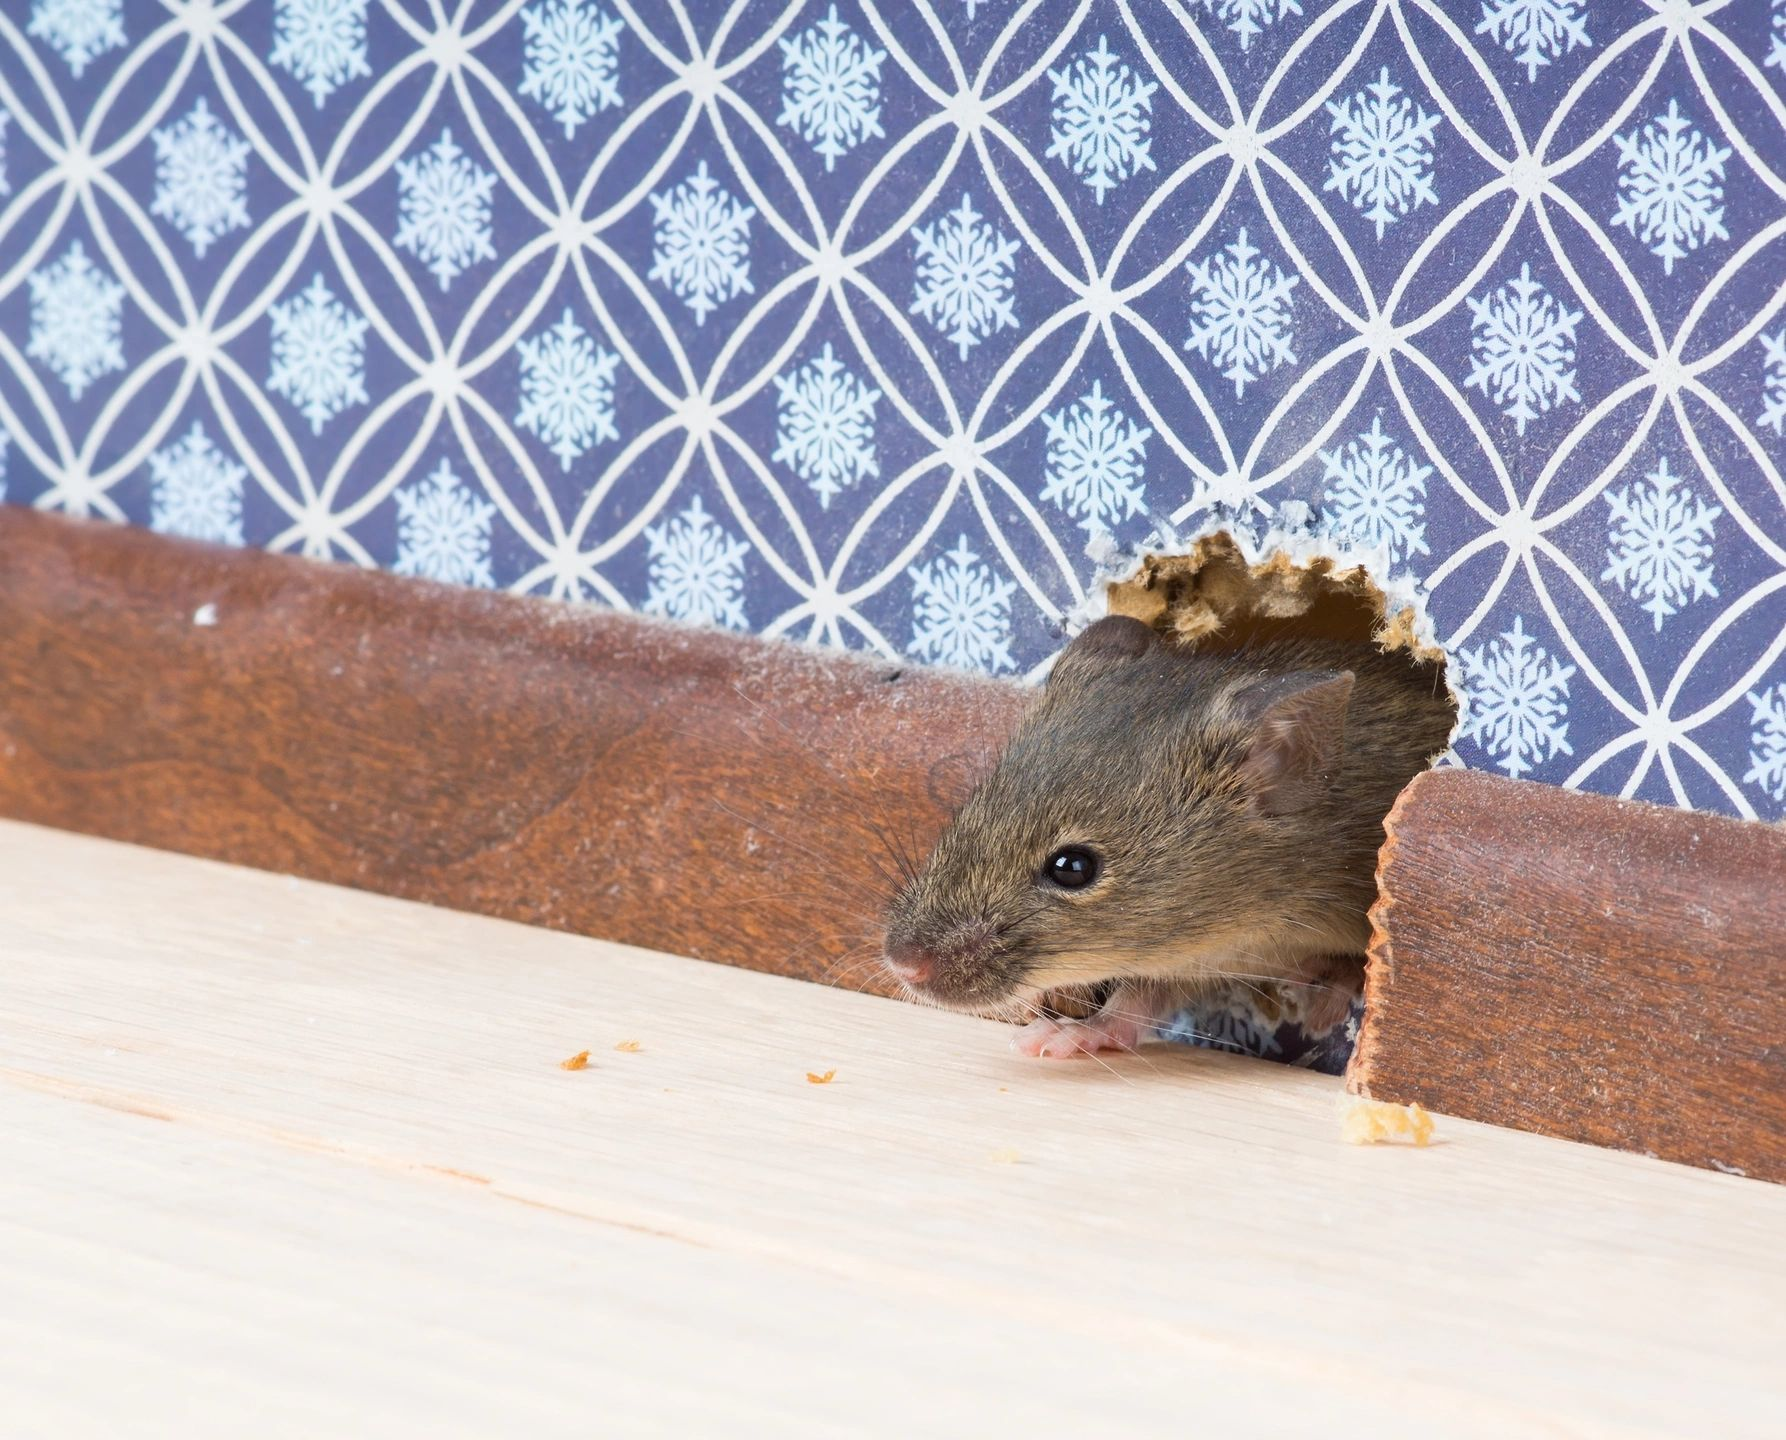 Buying a New Home? Look Out for These 3 Signs of a Pest Problem